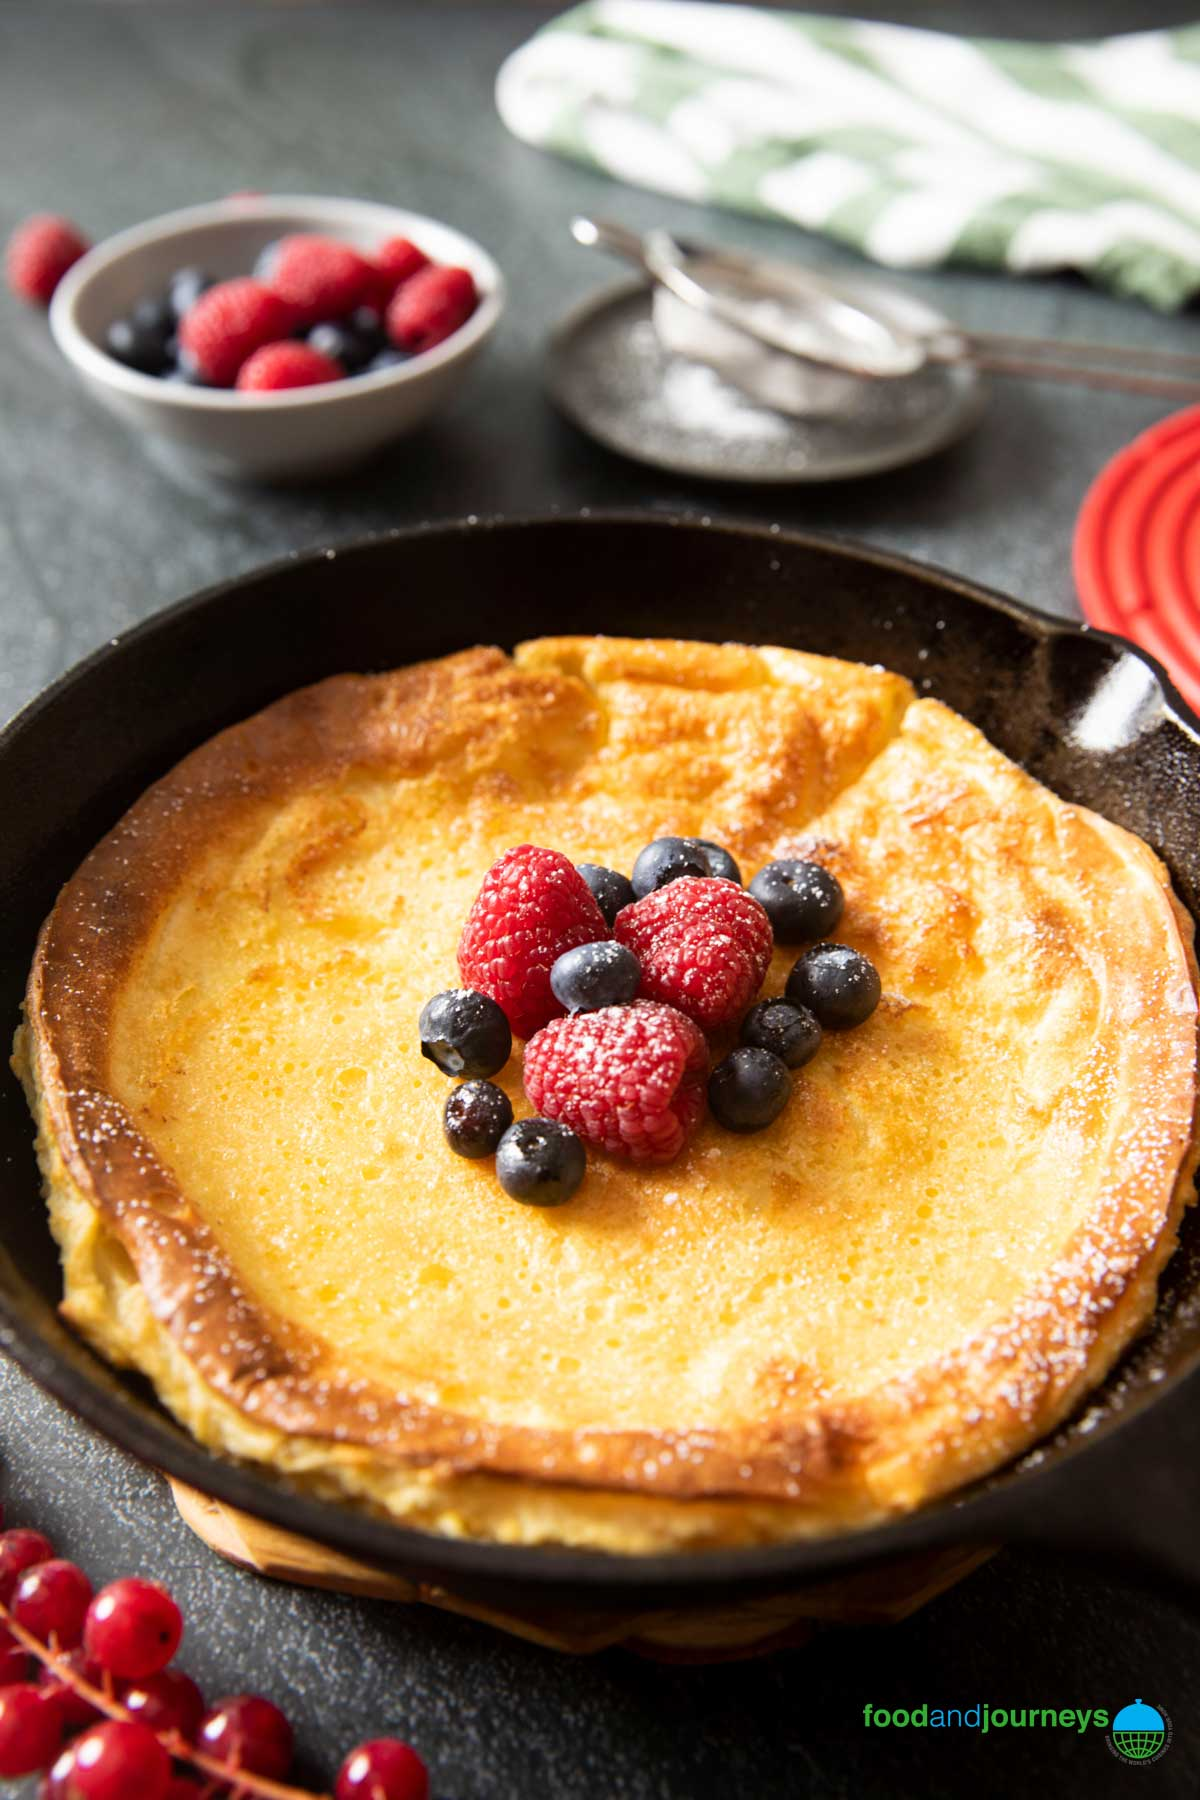 An image showing the side of an oven-baked pancake in a skillet, highlighting the thickness of the pancake, with fresh berries in the background.